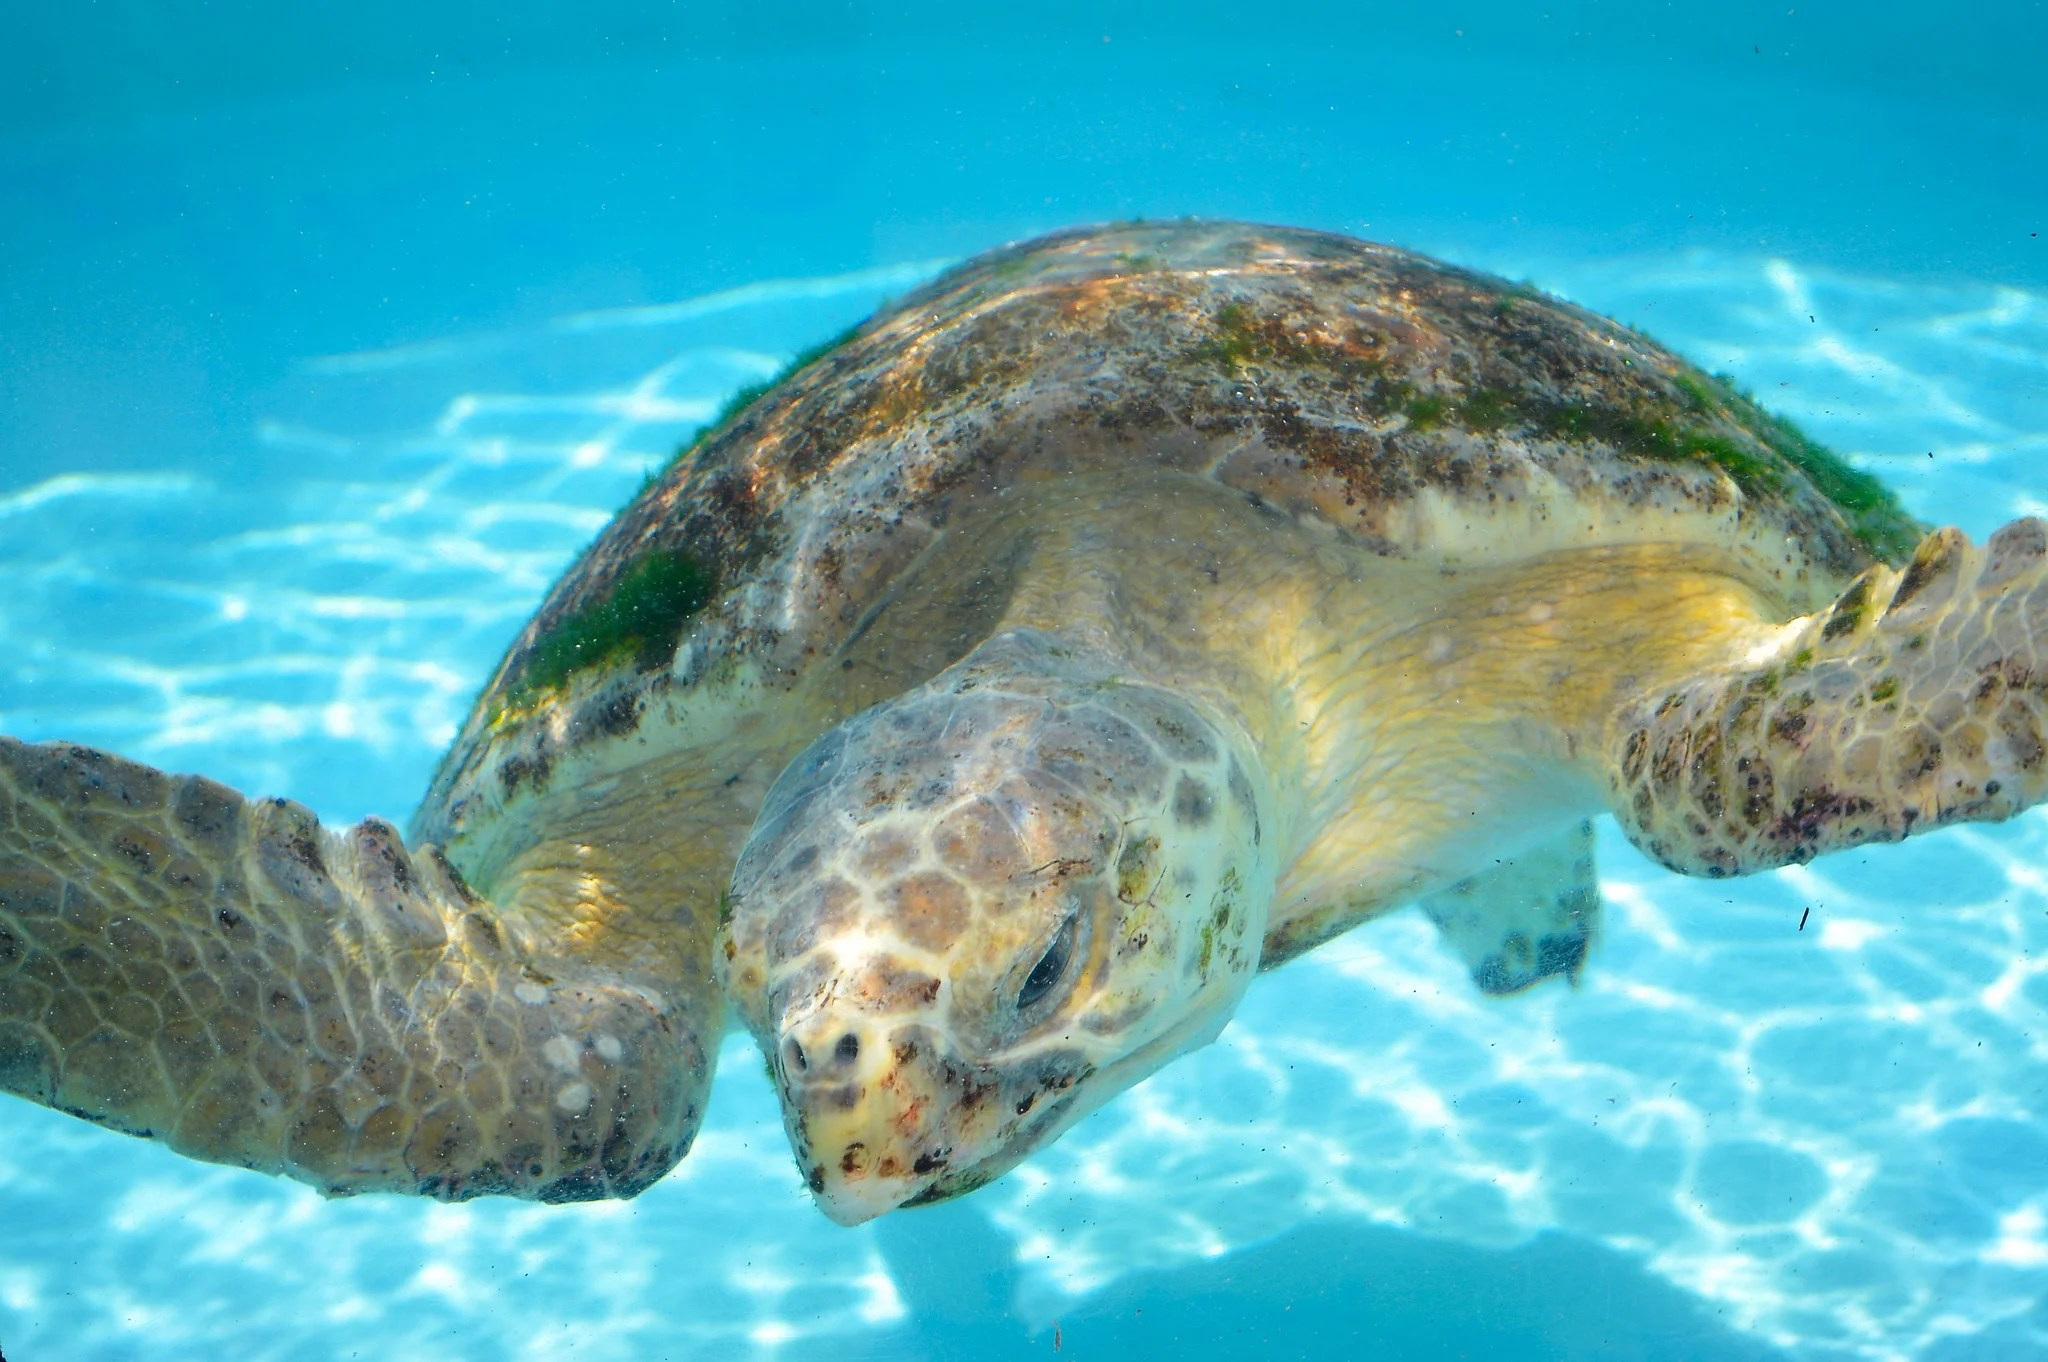 Essay About Turtles